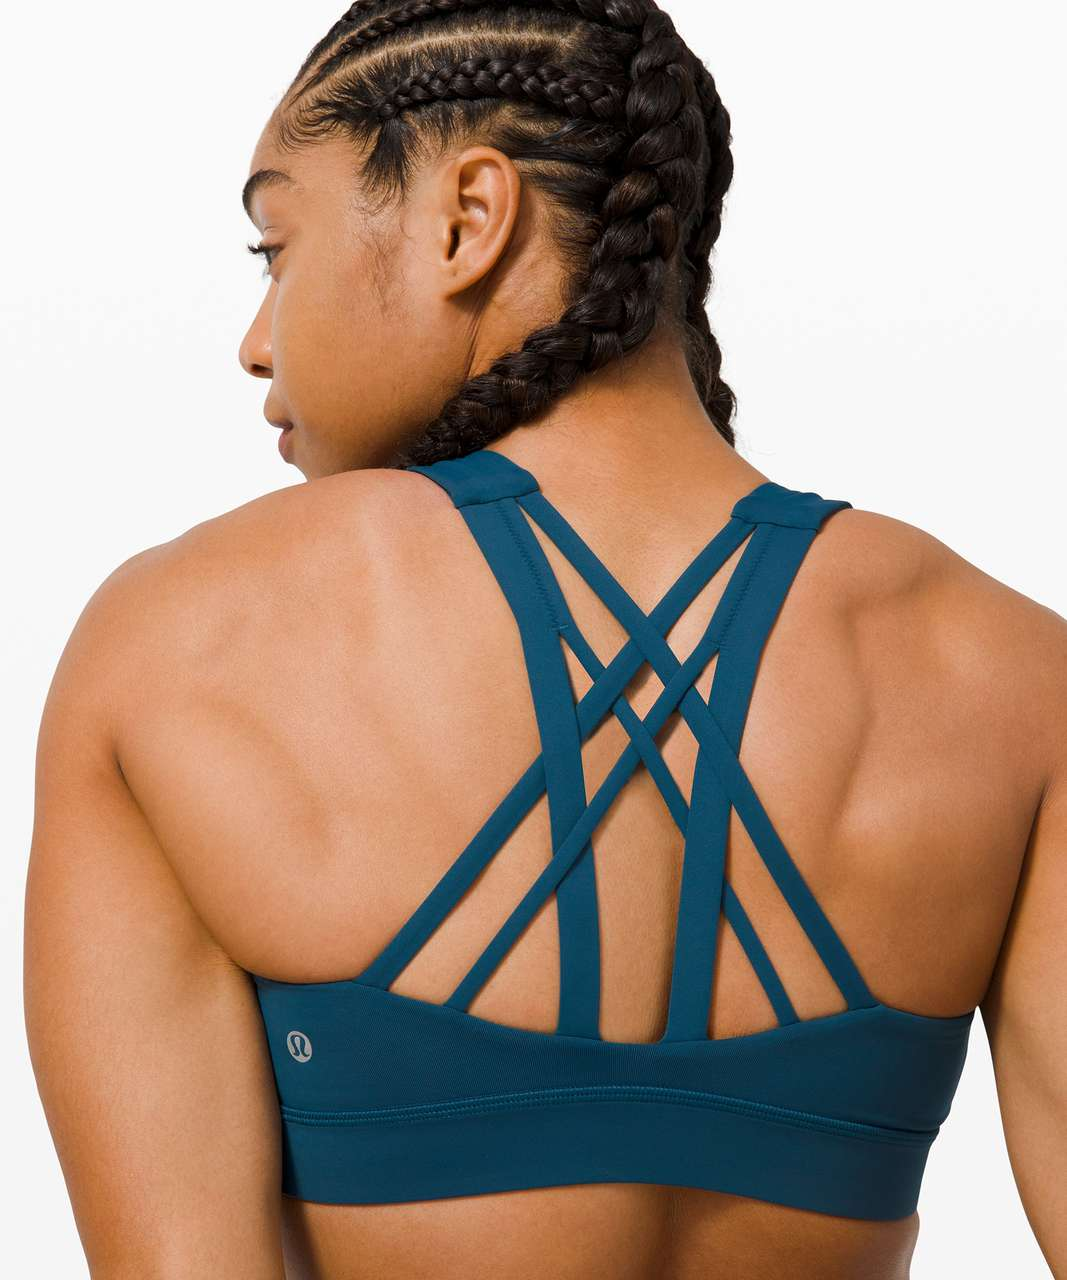 Lululemon Free To Be Elevated Bra *Light Support, DD/E Cup - Blue Borealis